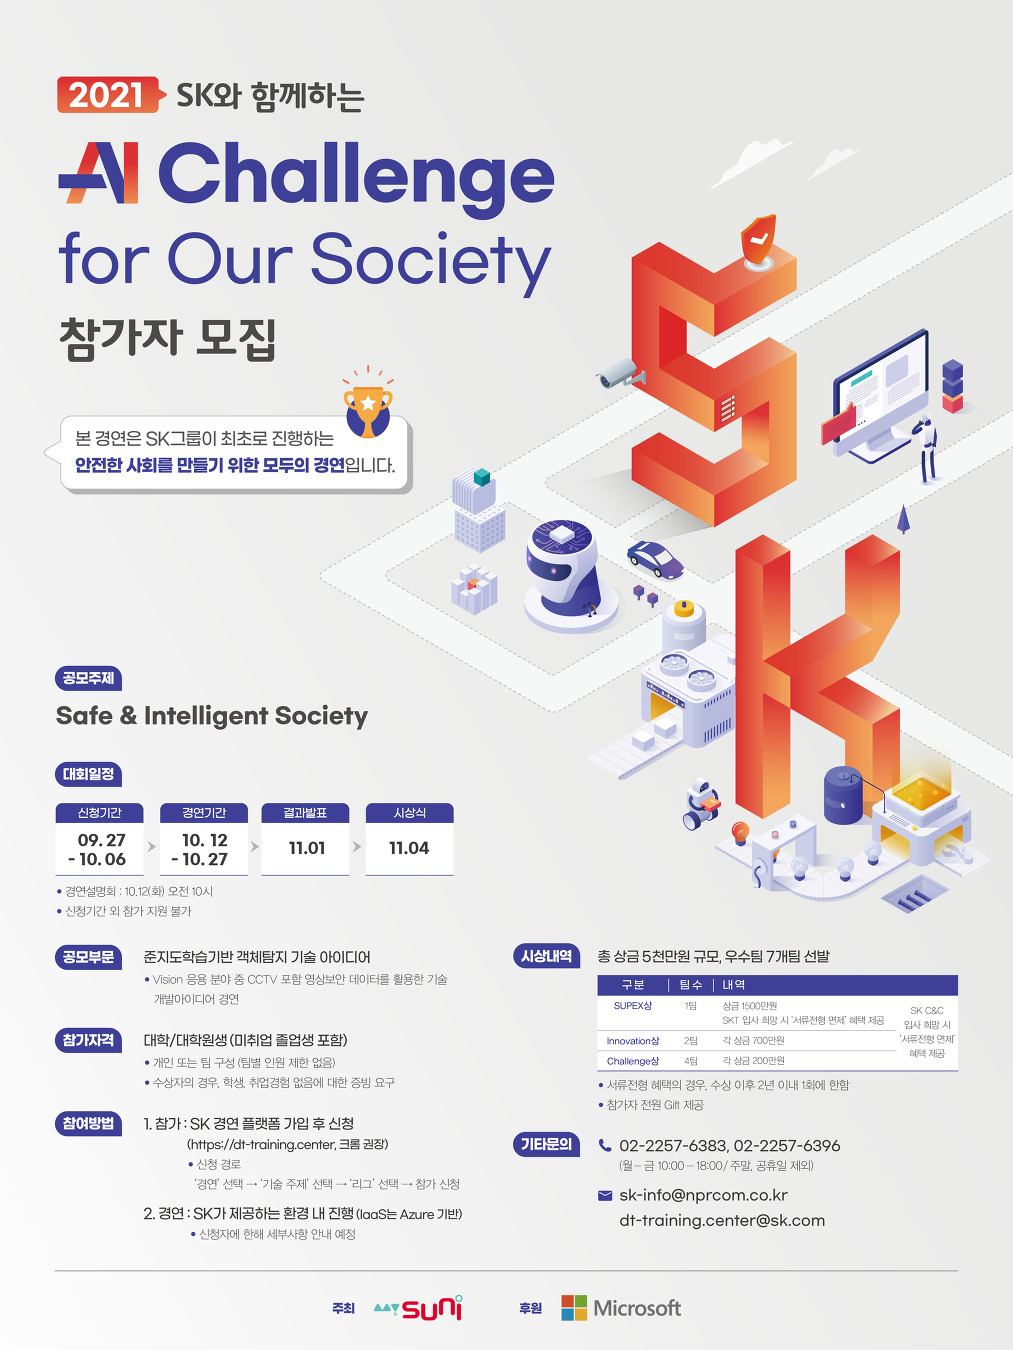 SK와 함께하는, AI Challenge for Our Society..